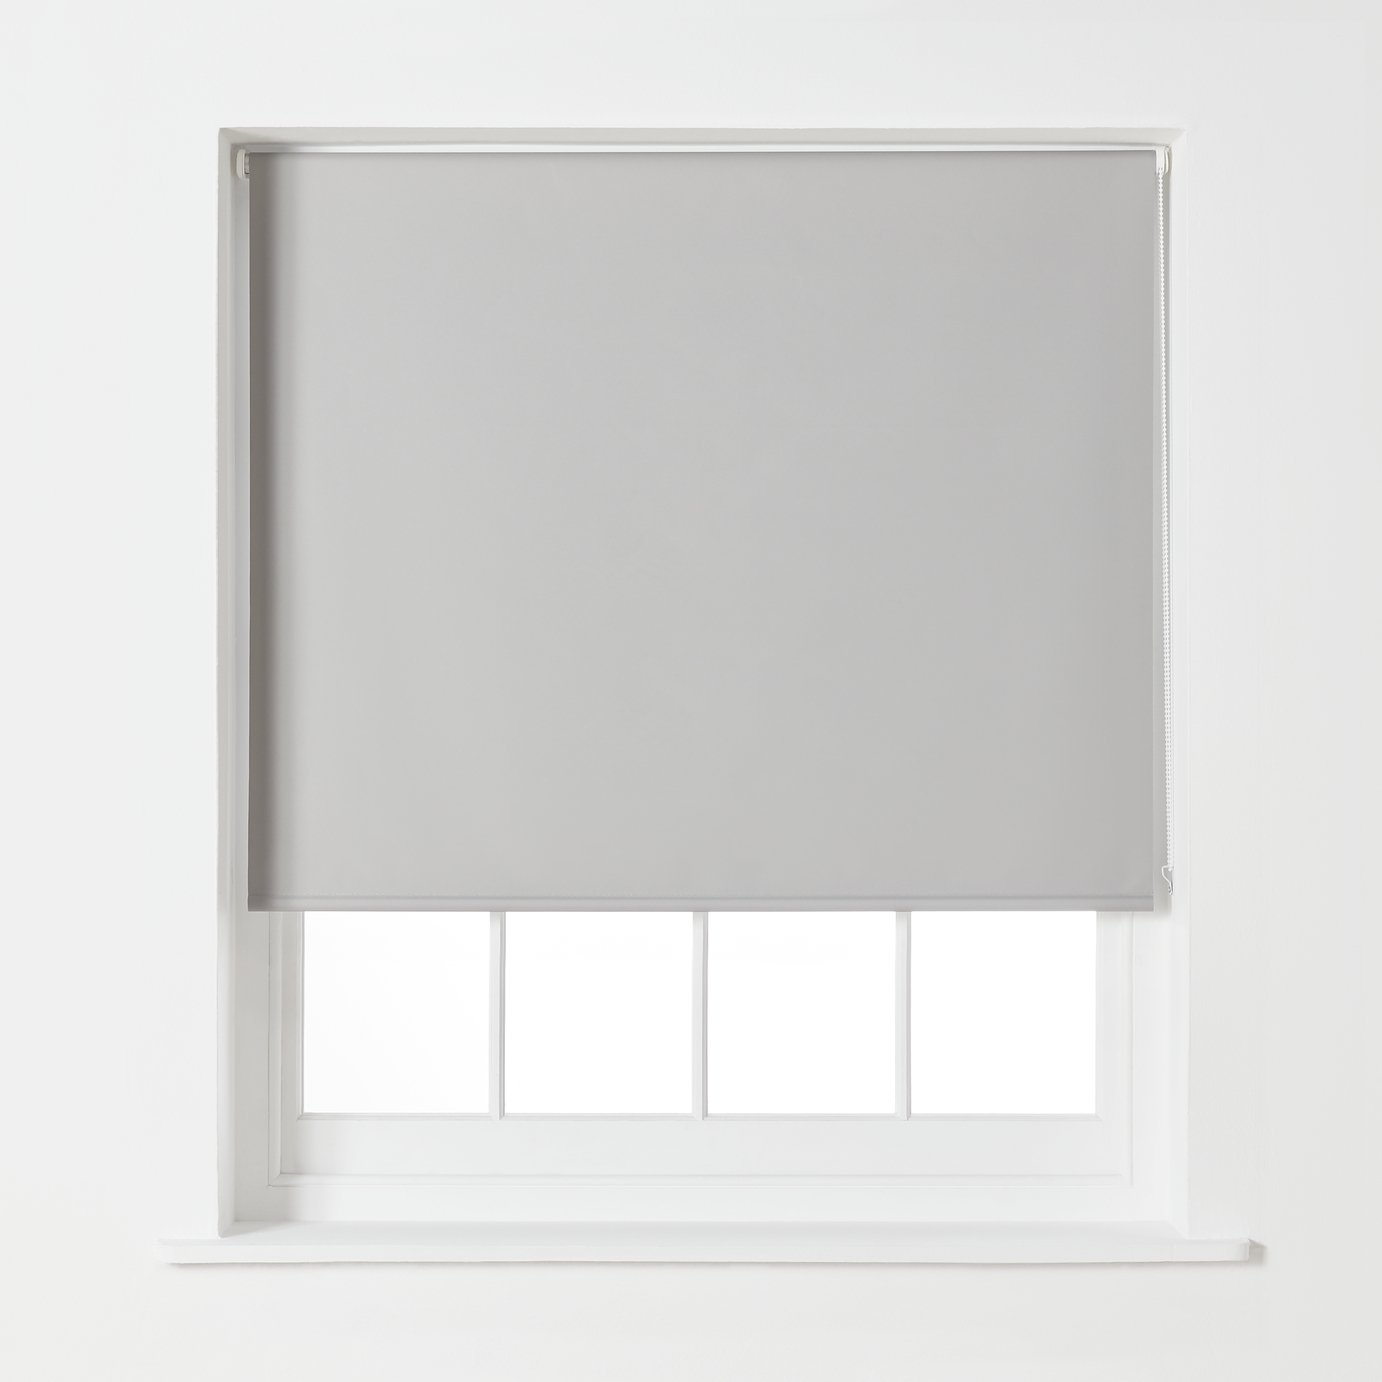 Argos Home Blackout Roller Blind - 4ft - Dove Grey